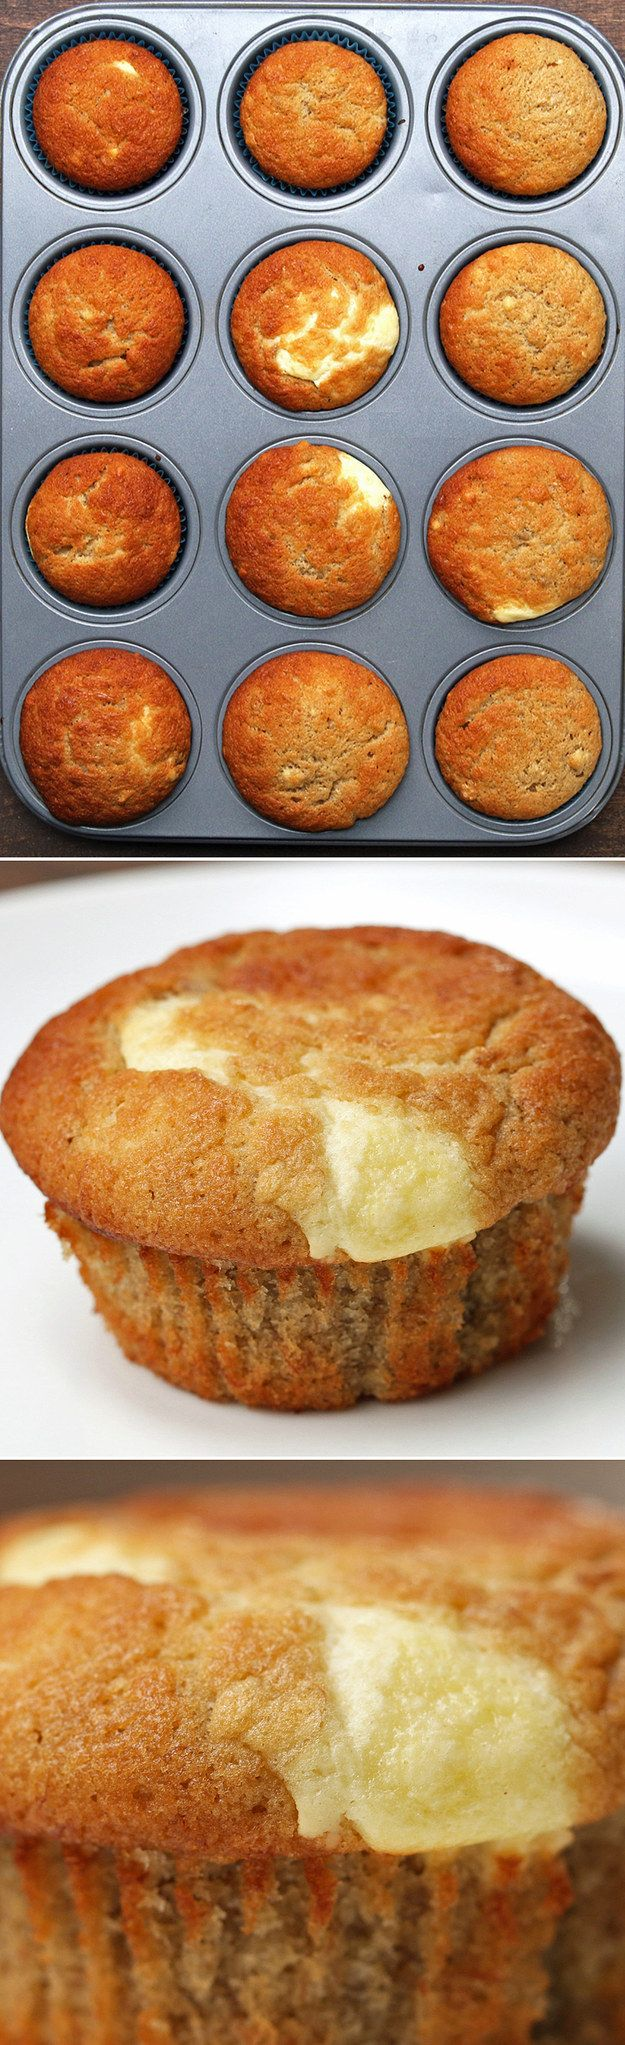 Cream Cheese–FIlled Banana Bread Muffins | Get Your Baking Hat On And Make These Cream Cheese–FIlled Banana Bread Muffins